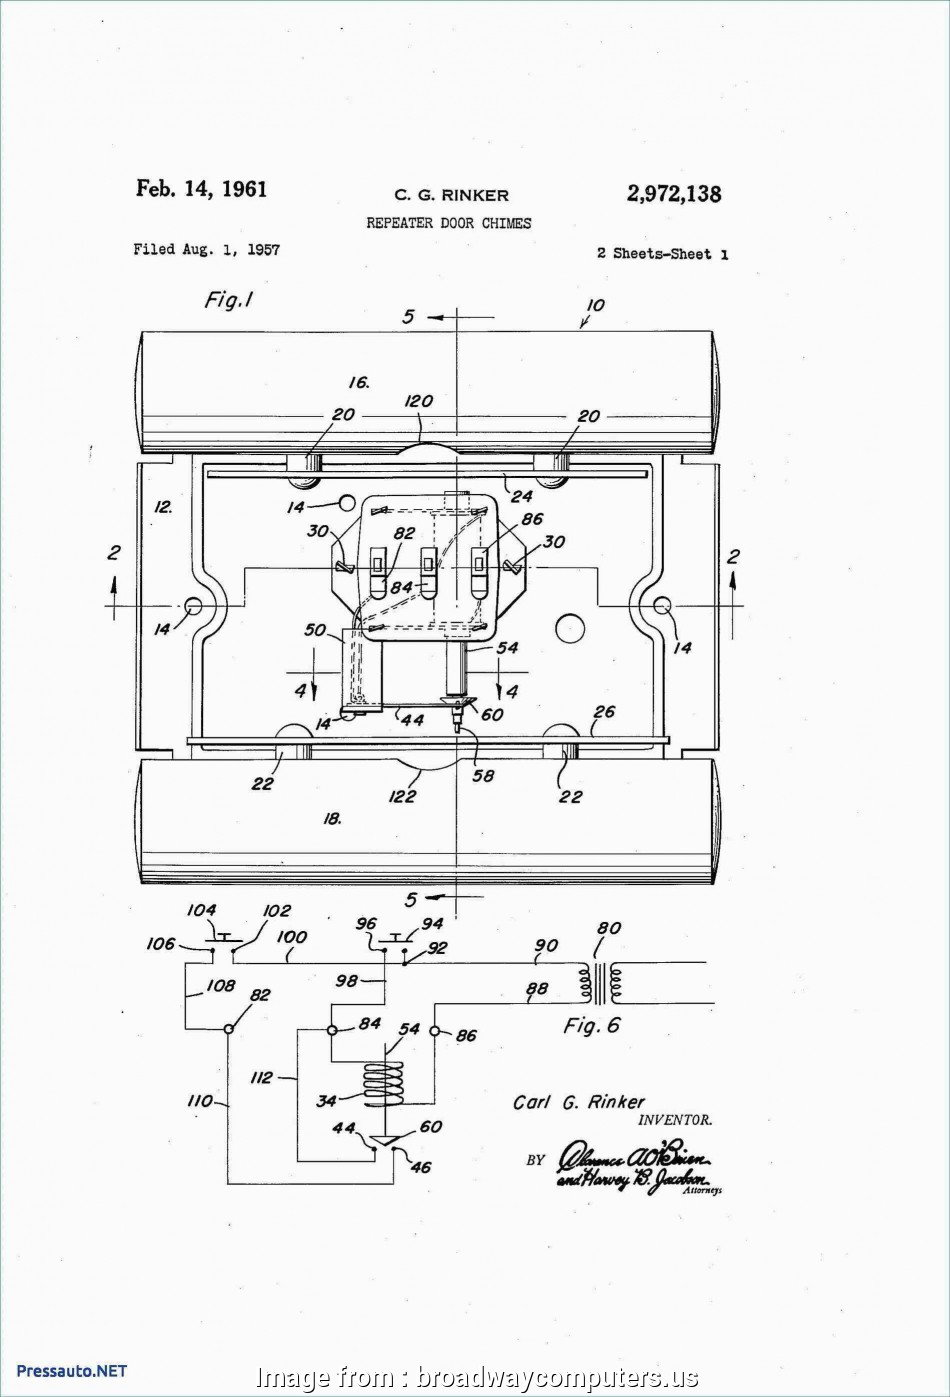 6 Wire Doorbell Wiring Diagram Simple Images Of 6 Wire ... Wiring A Doorbell On on